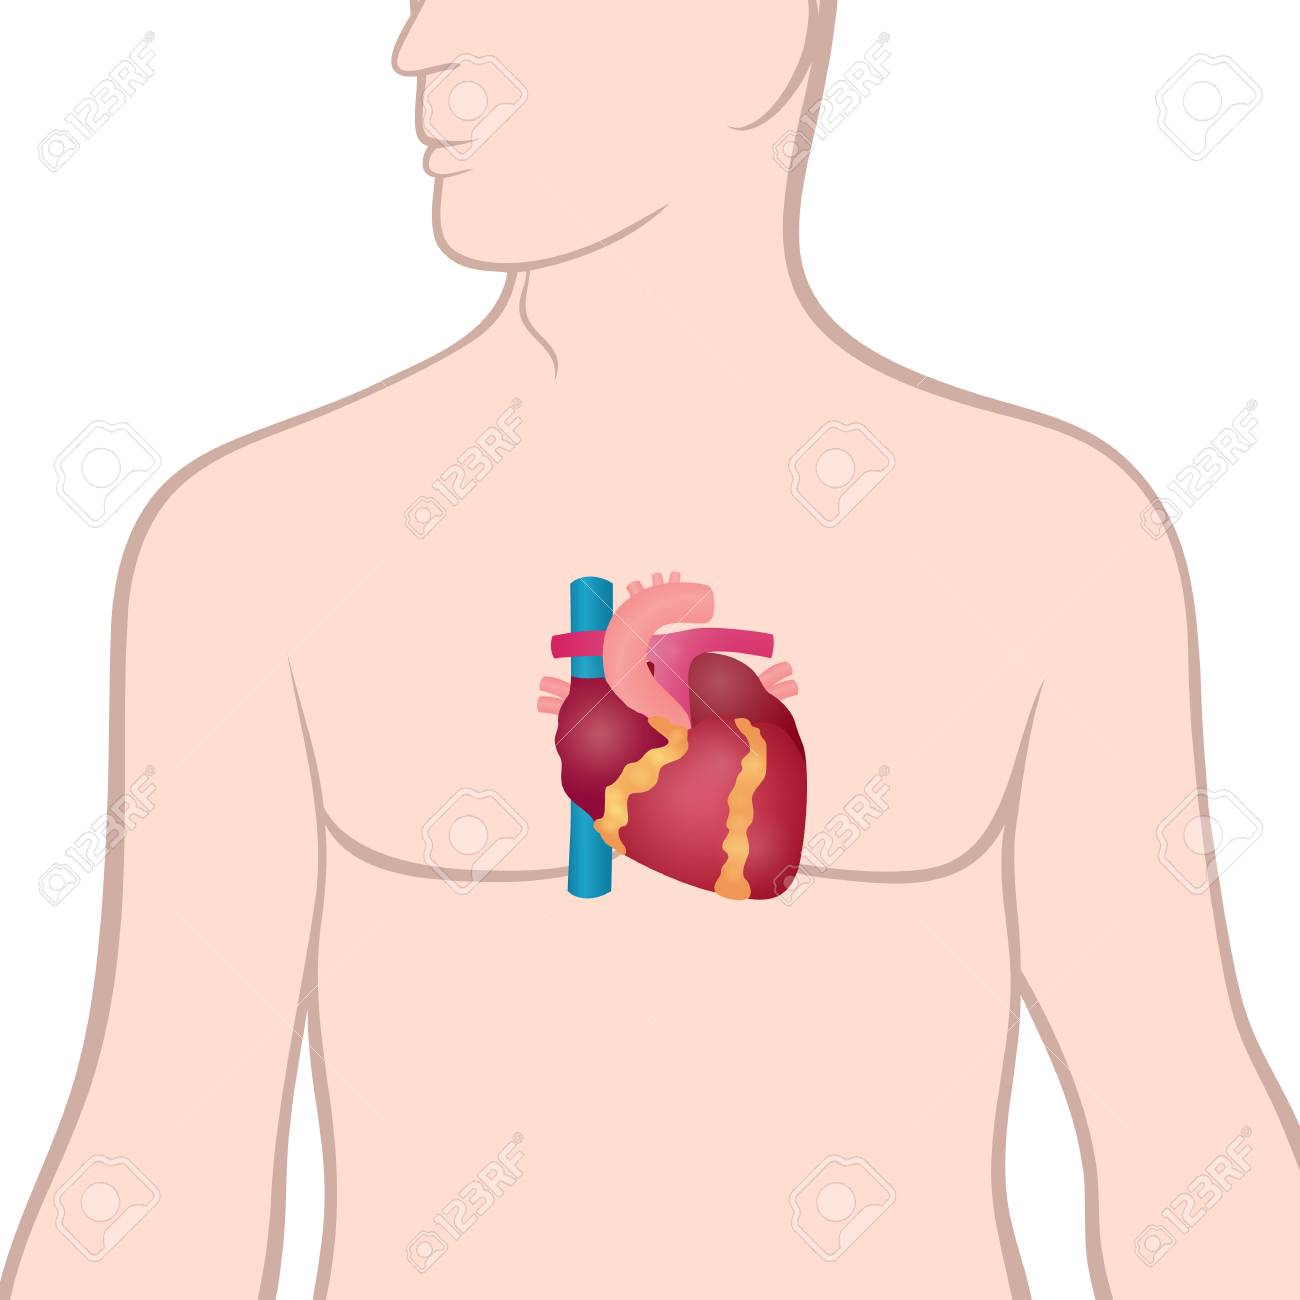 Anatomy Of The Human Heart, The Location Of The Heart In The ...